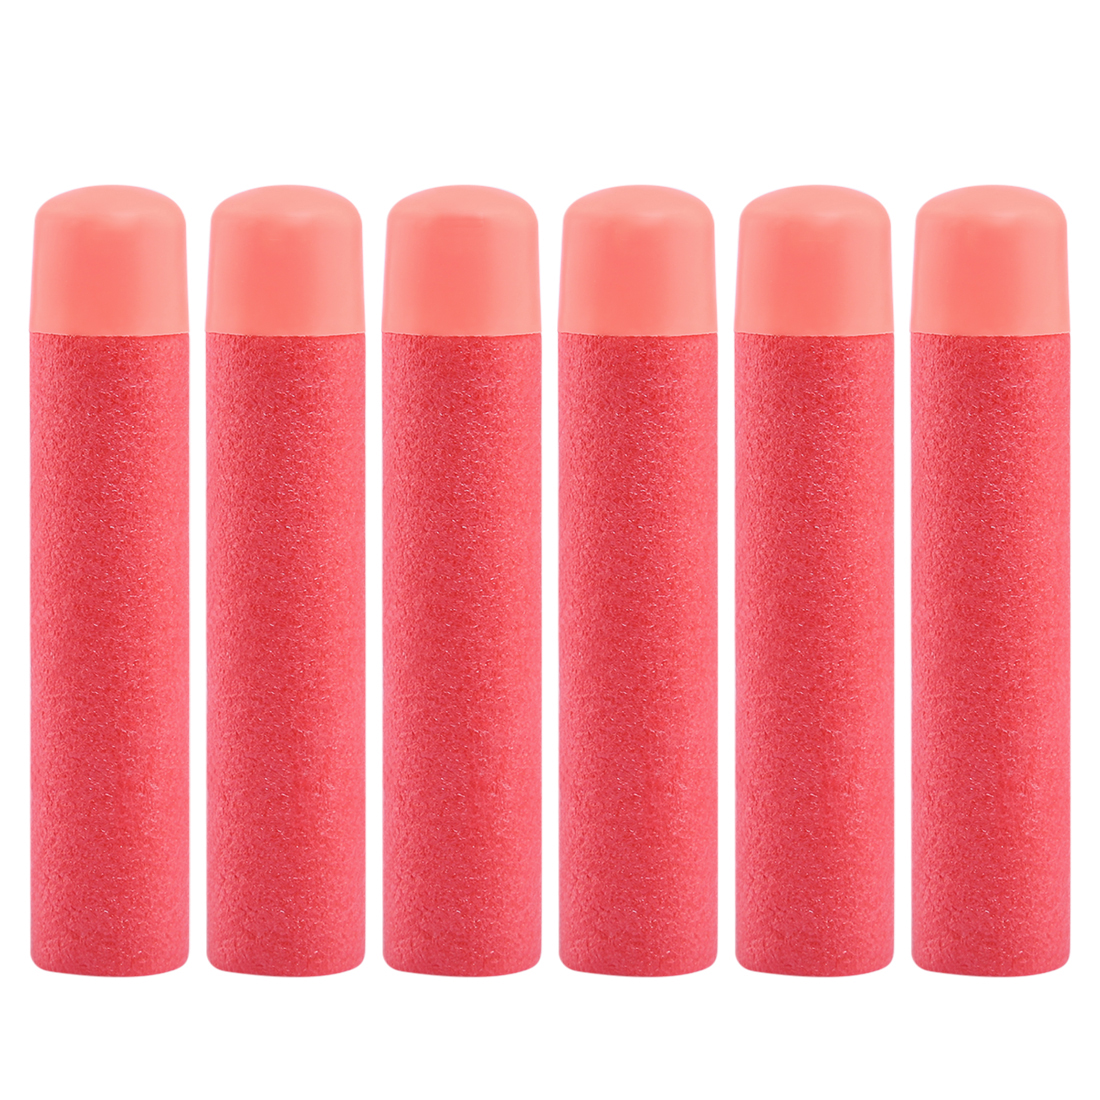 Nfstrike 6pcs Air Soft Bullet Thickened EVA Hollow Soft Head Foam Soft Bullets For Nerf Mega Series Toy Gun Acc - Red